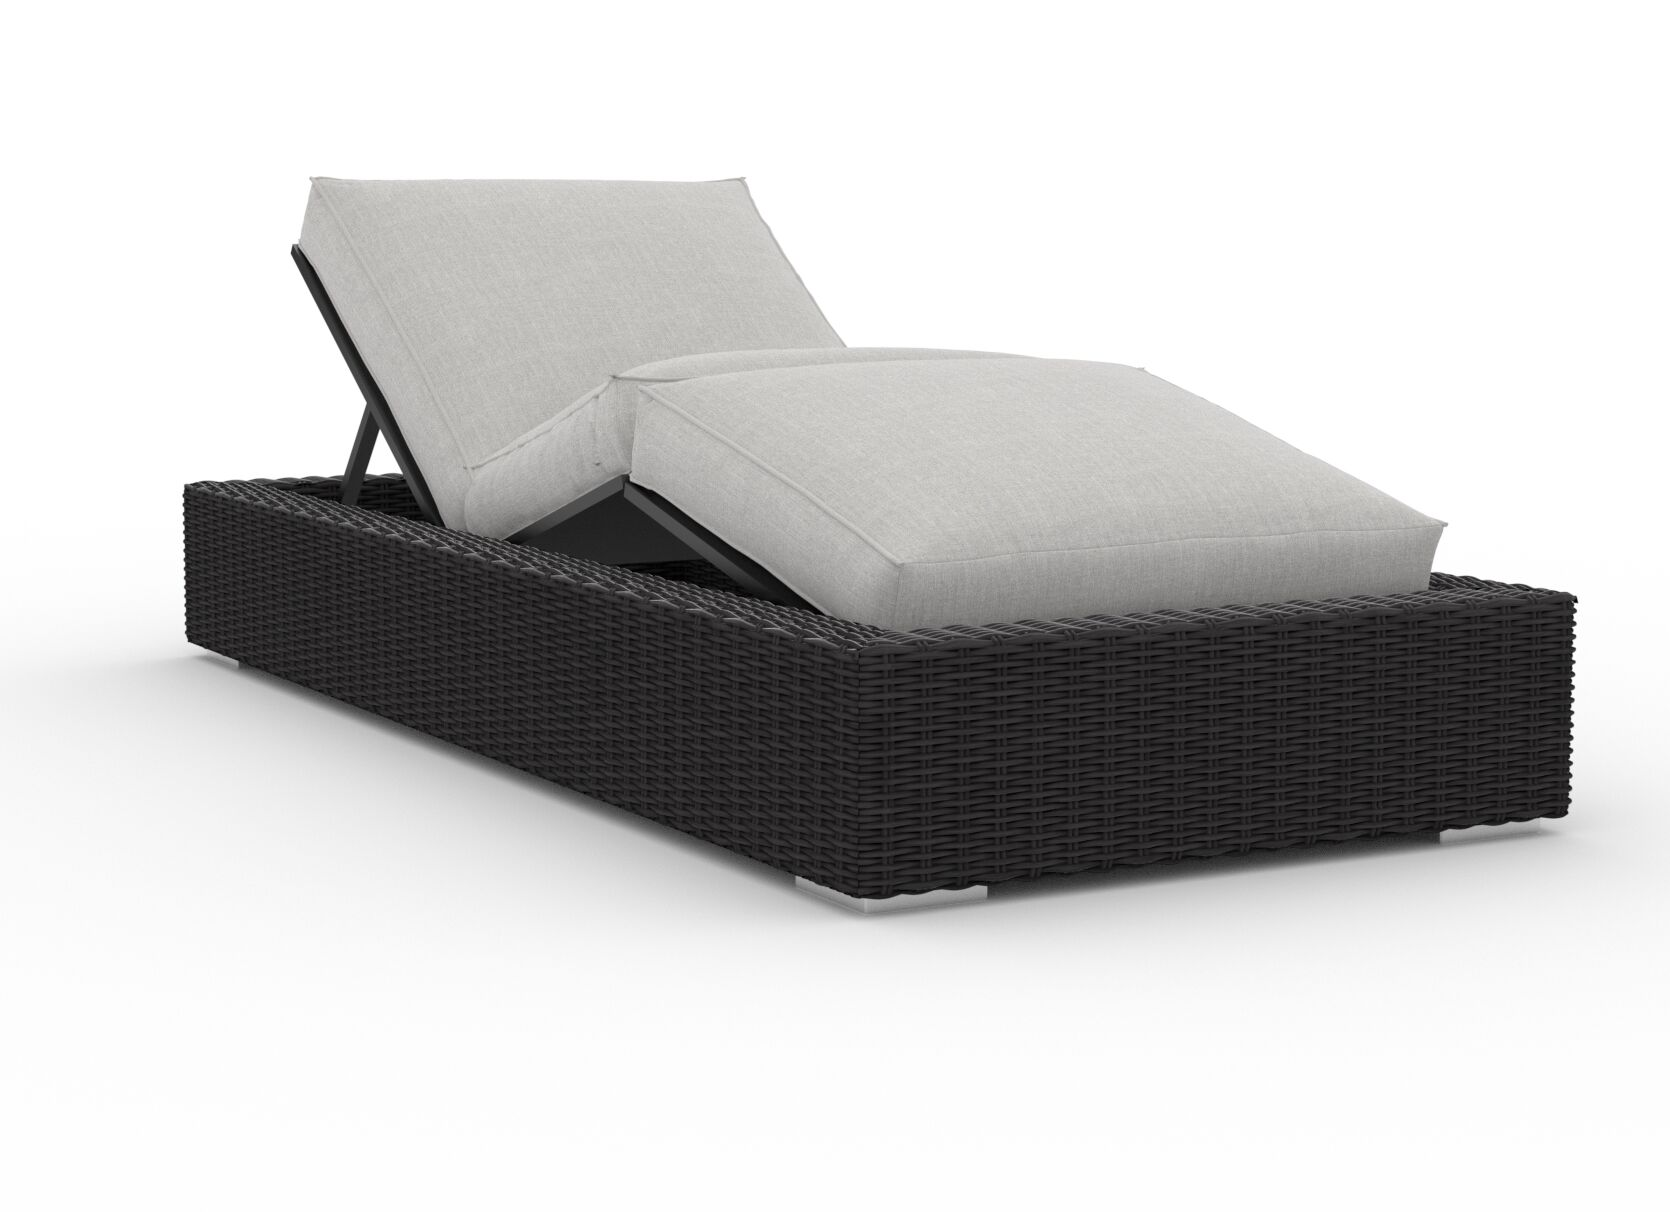 Mcanulty Reclining Chaise Lounge with Cushion Cushion Color: Cast Silver